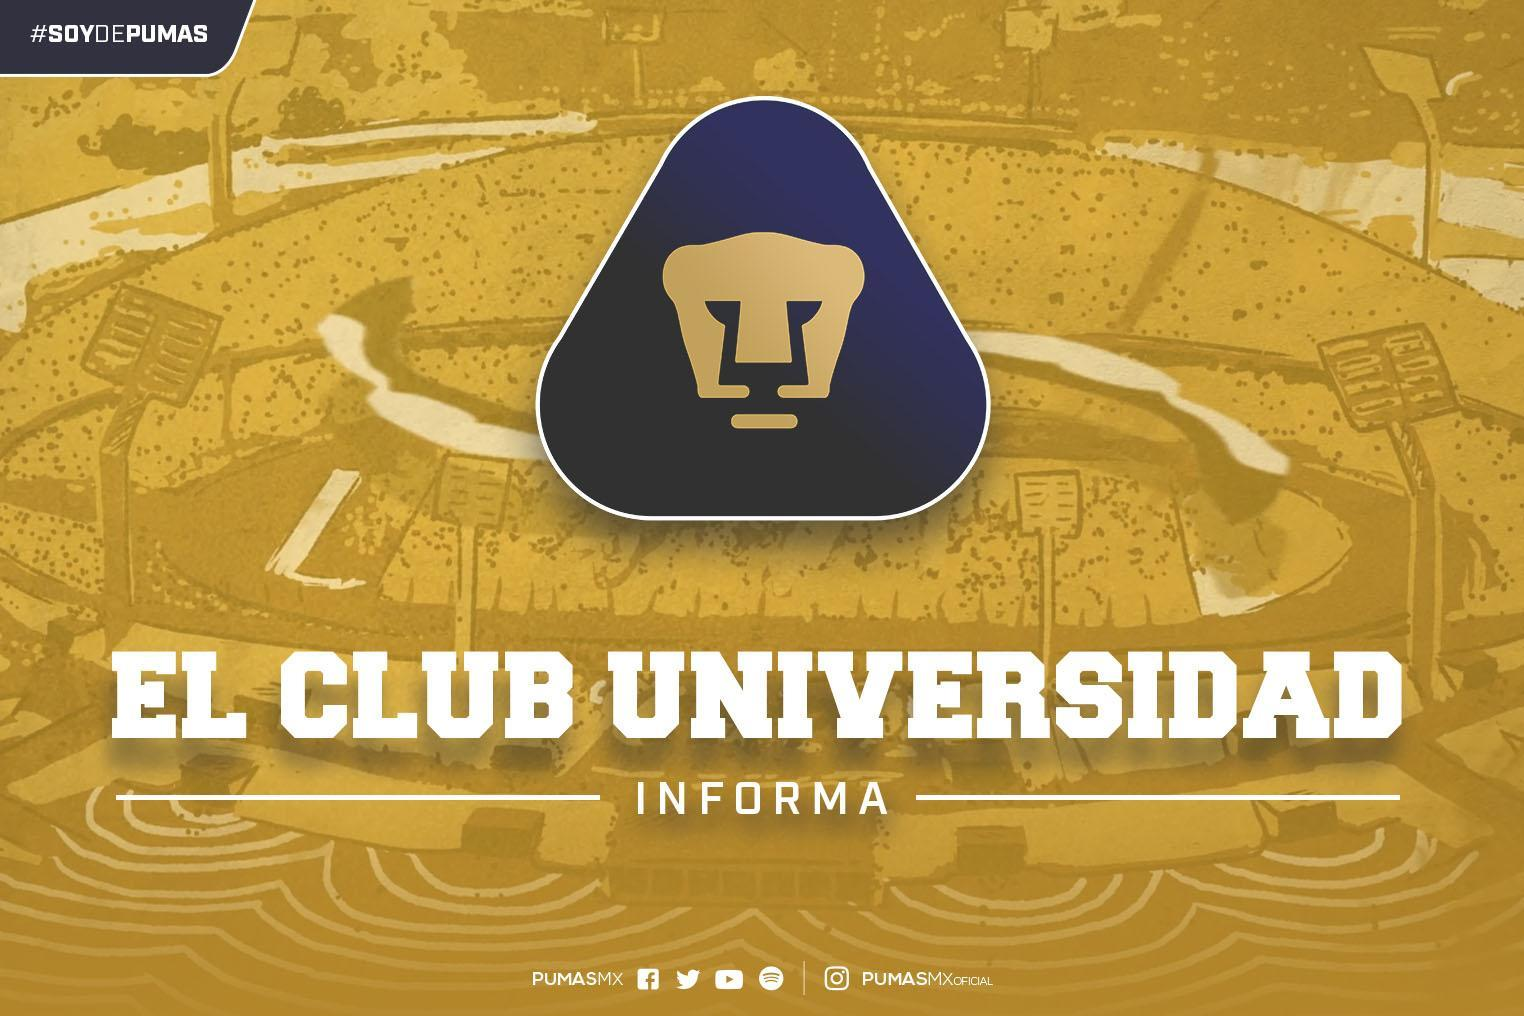 El Club Universidad Nacional, informa: